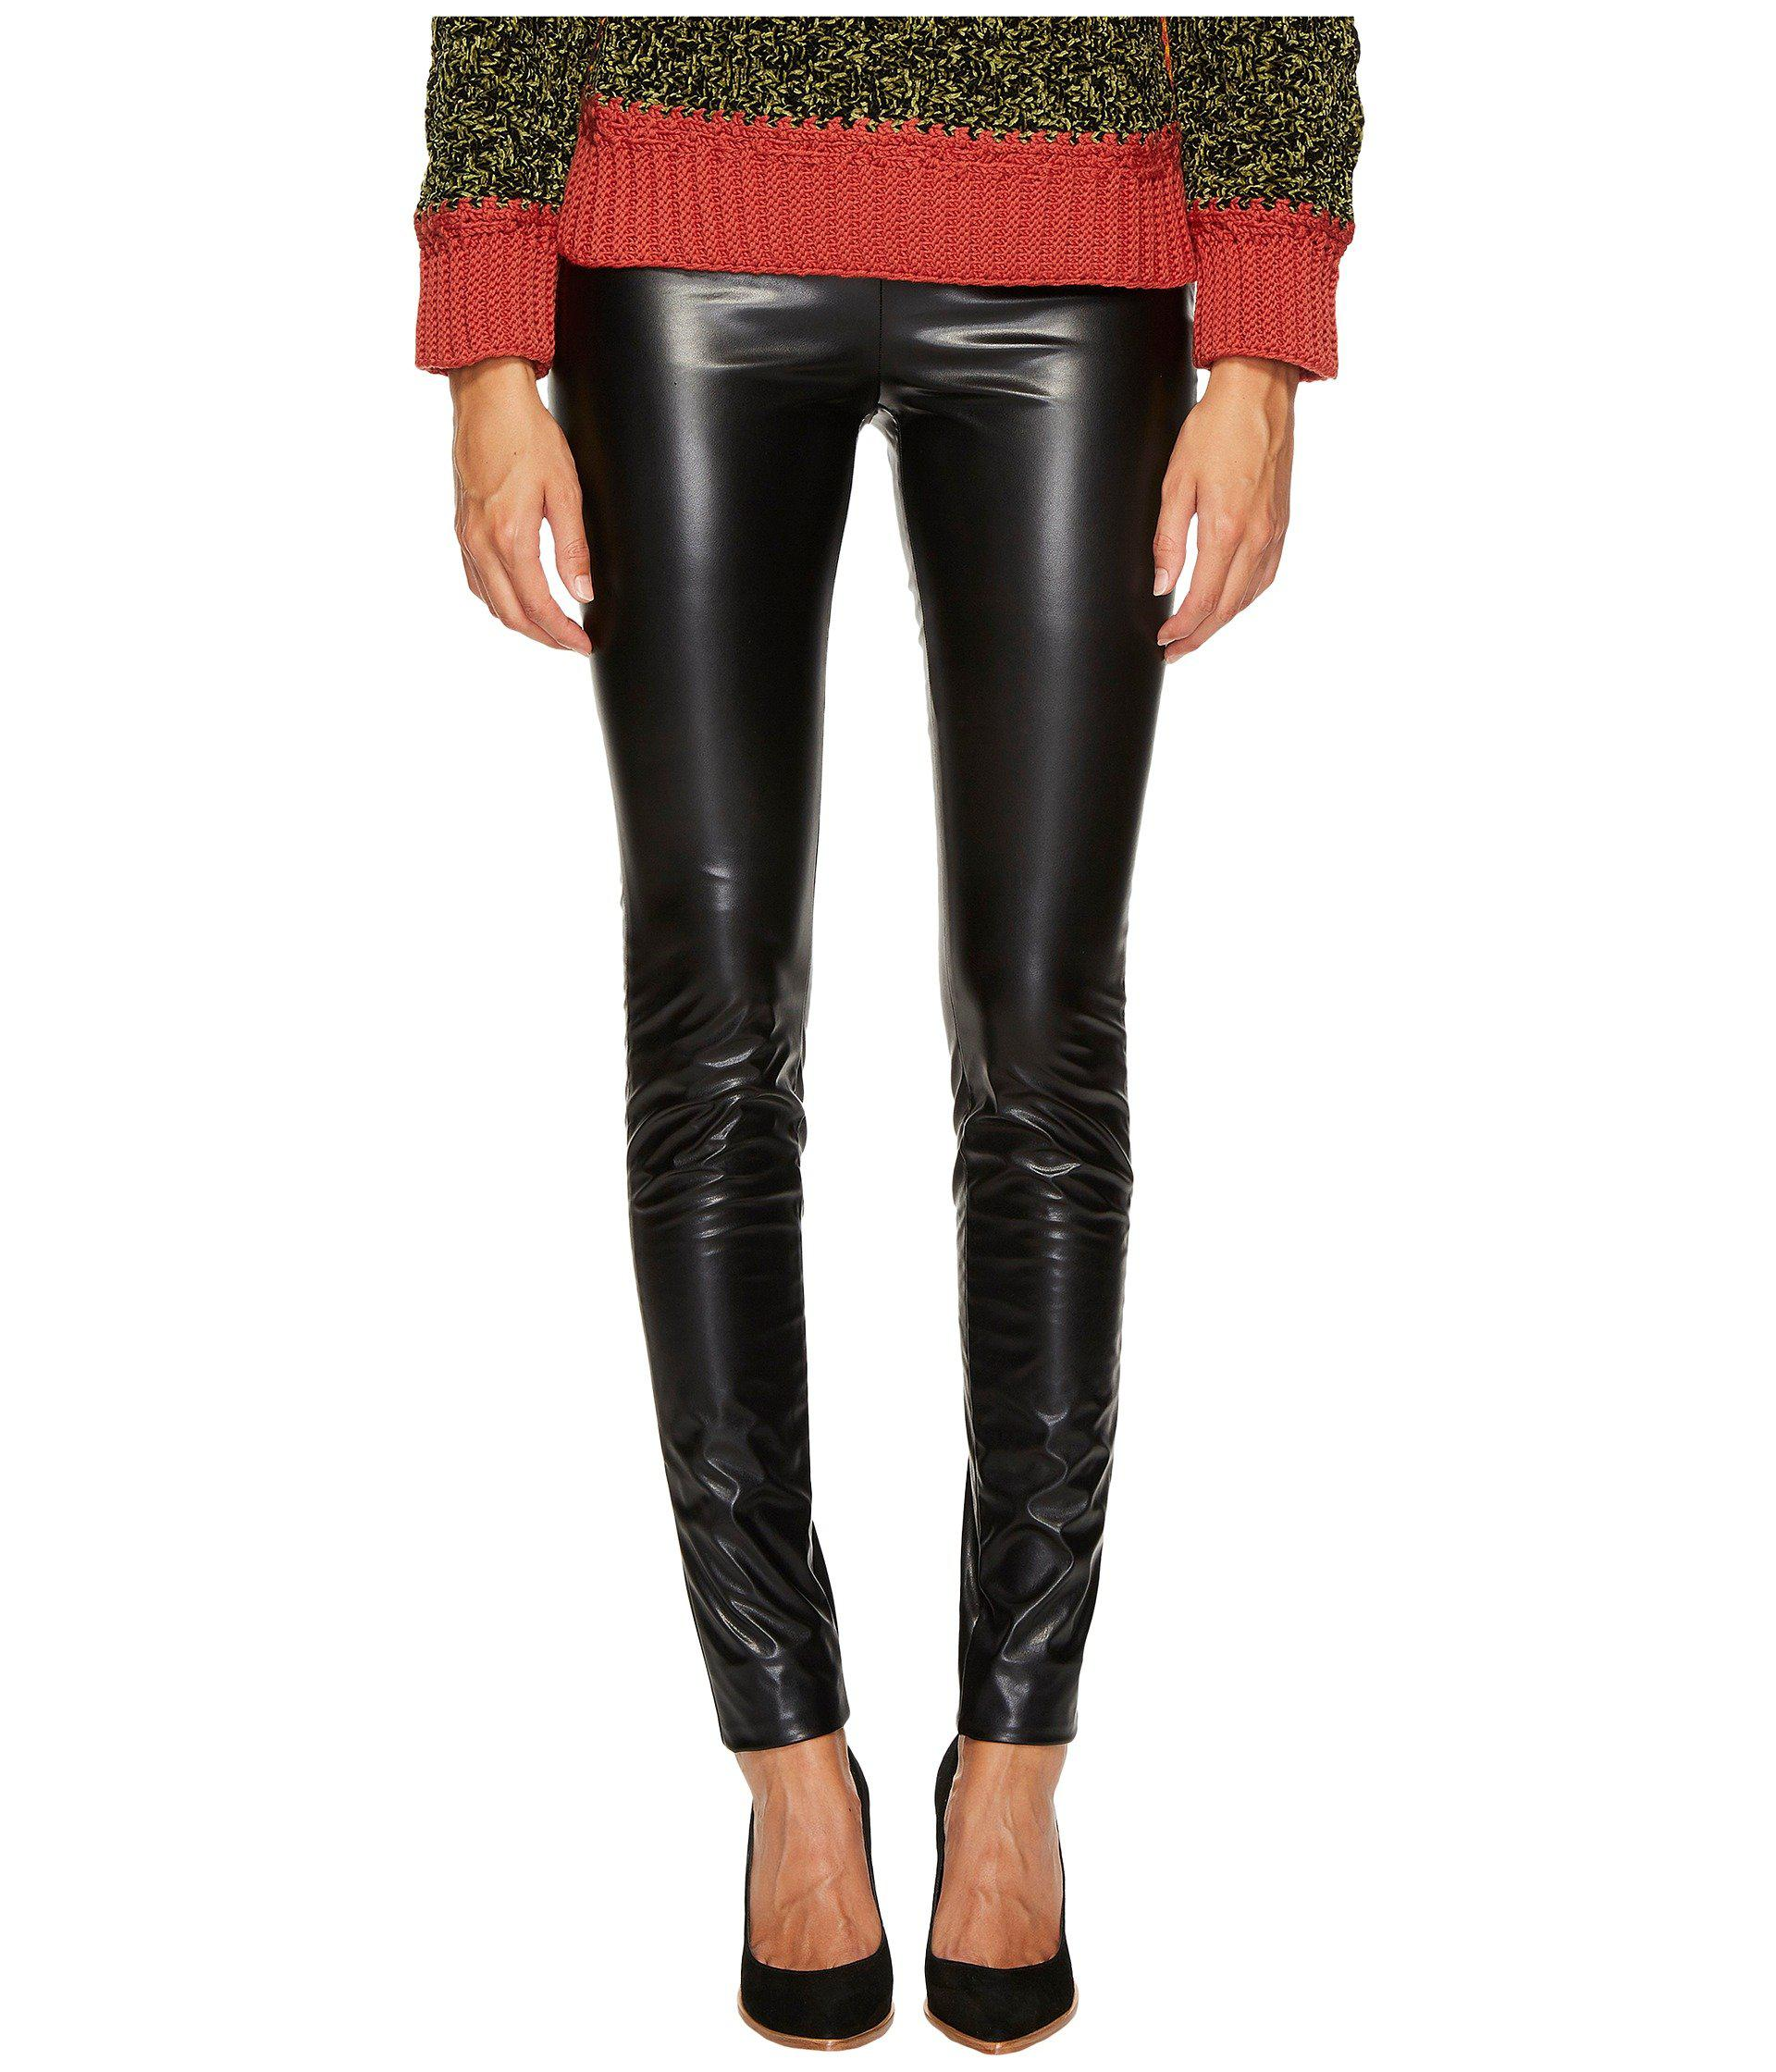 77f4eb1f8c2c9 Gallery. Previously sold at: Zappos · Women's Faux Leather Pants ...